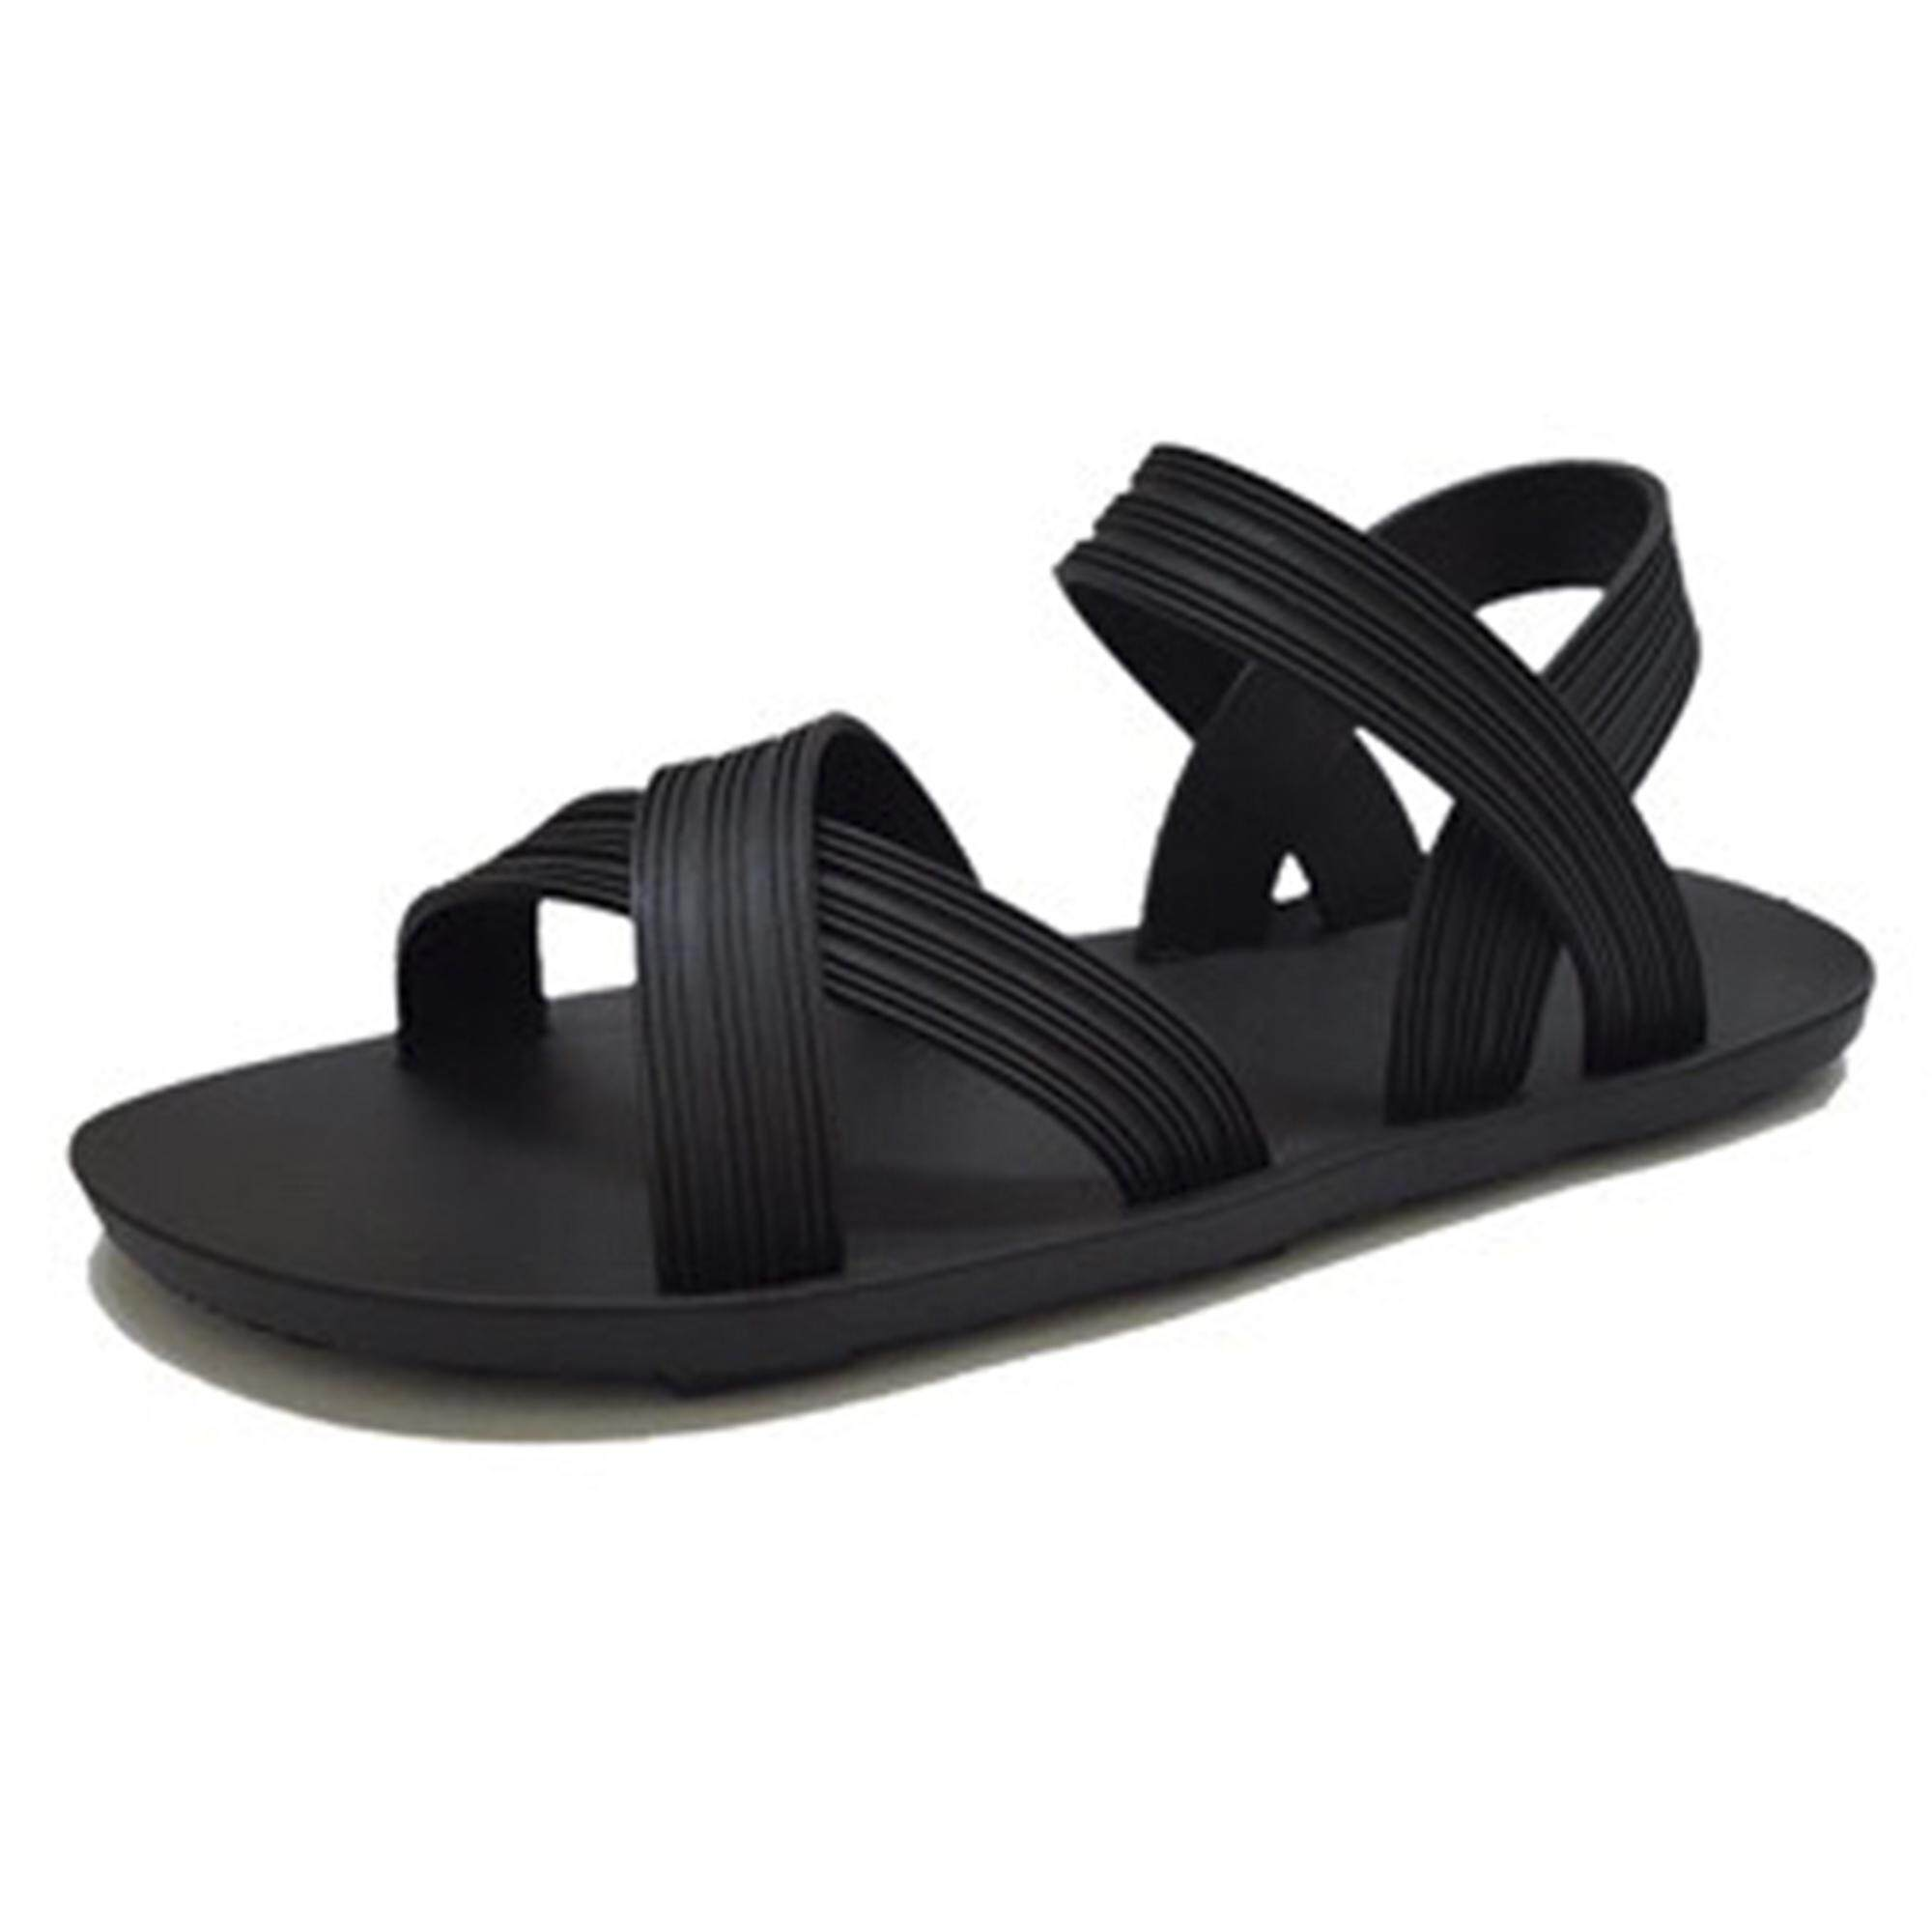 8bc448b95 Buy Sandals for Women Online at Best Prices in Malaysia